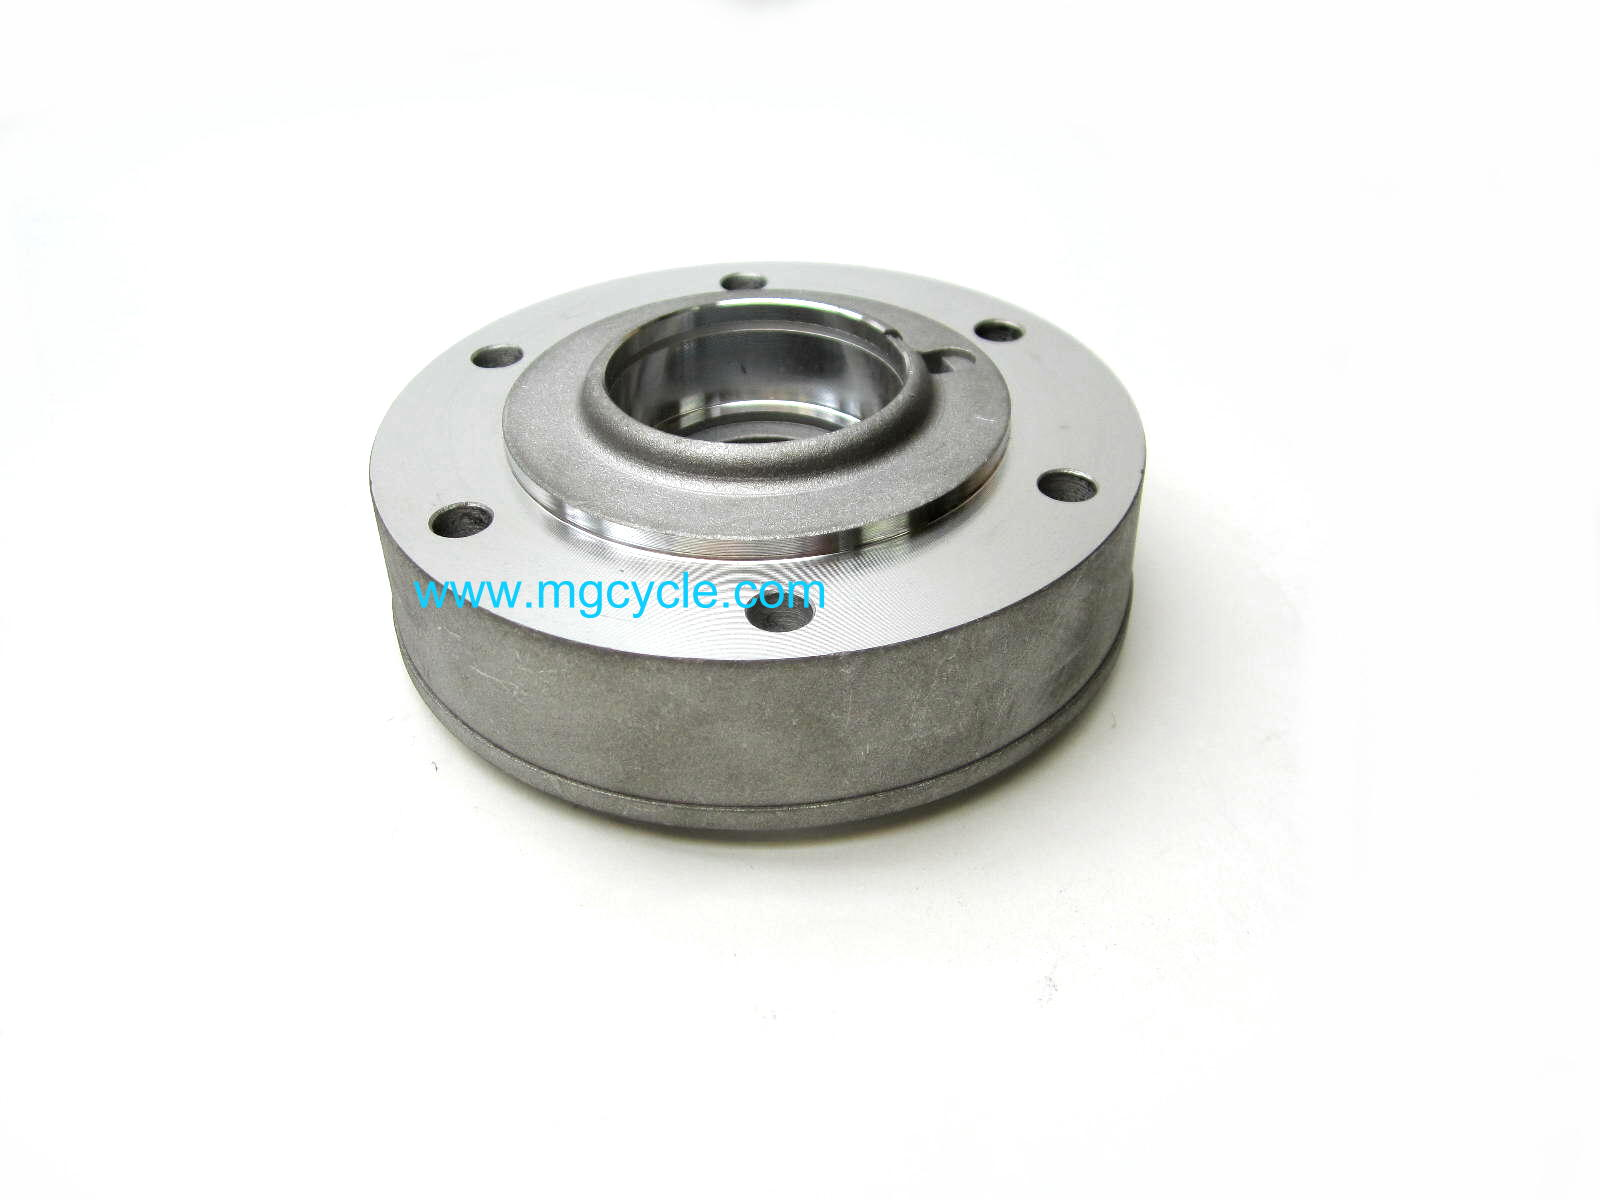 wheel flange, brake & bearing carrier: T3 G5 Convert